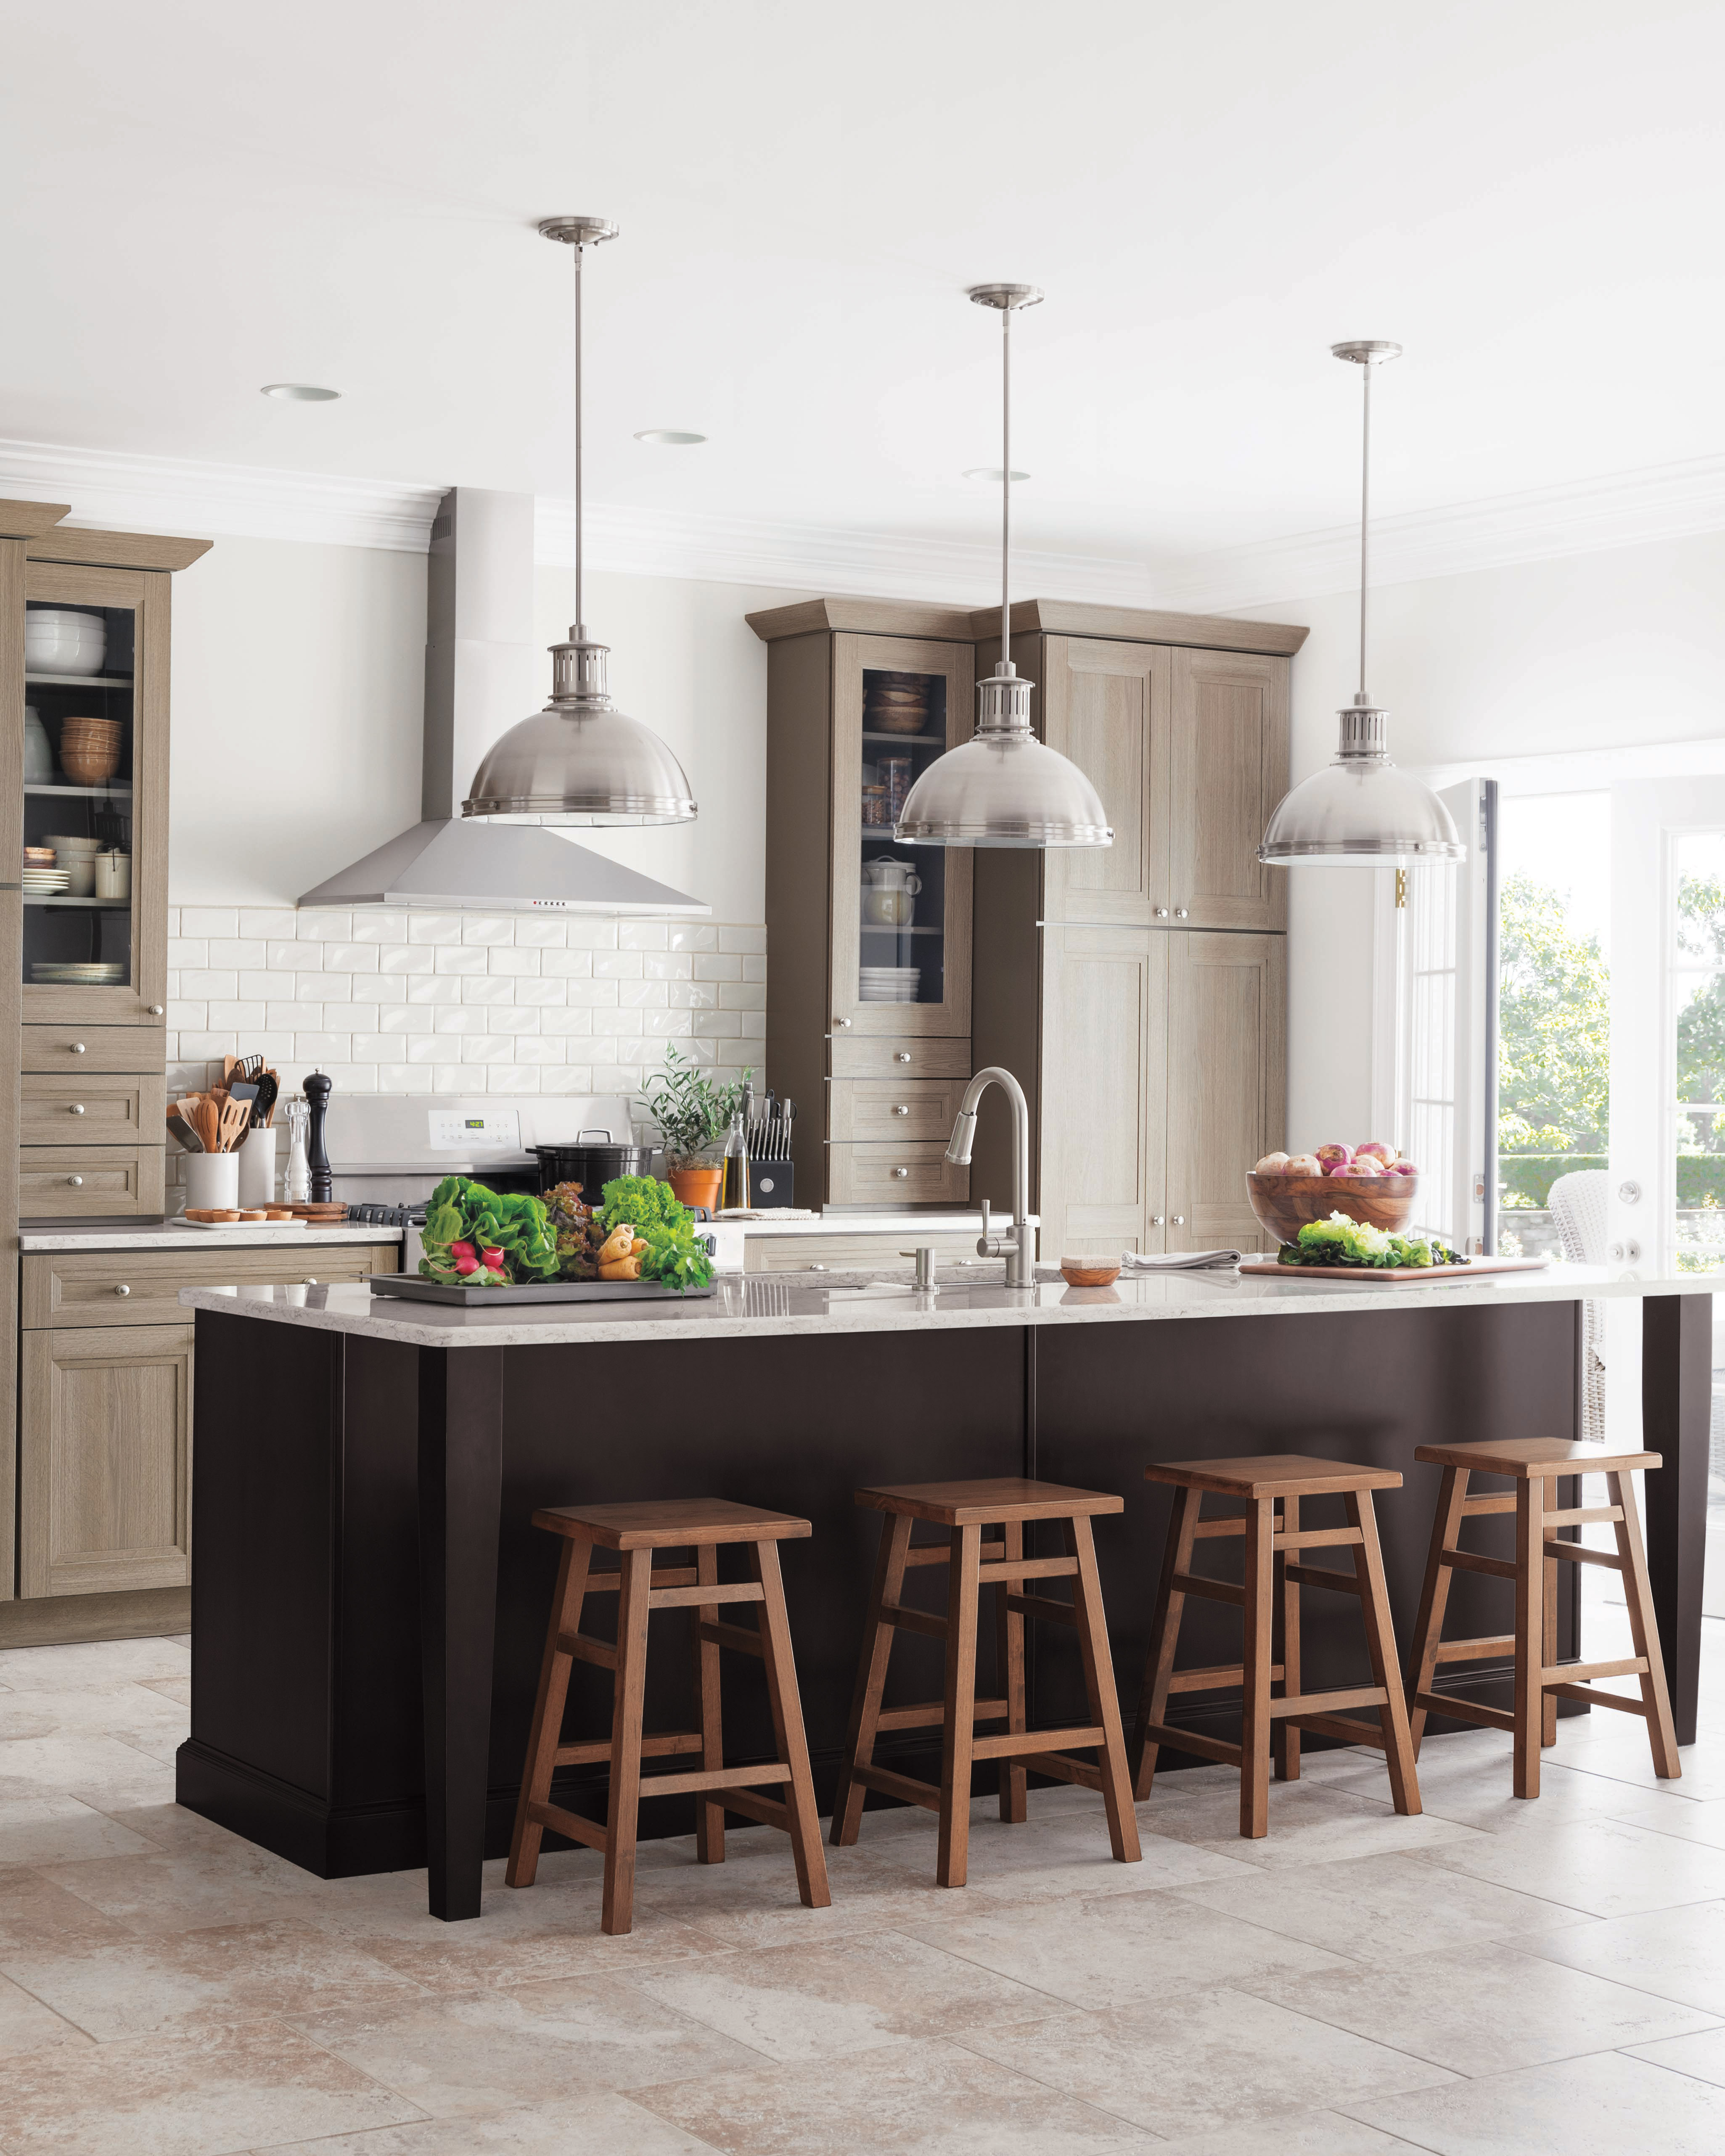 Pleasant Choosing A Kitchen Island 13 Things You Need To Know Caraccident5 Cool Chair Designs And Ideas Caraccident5Info